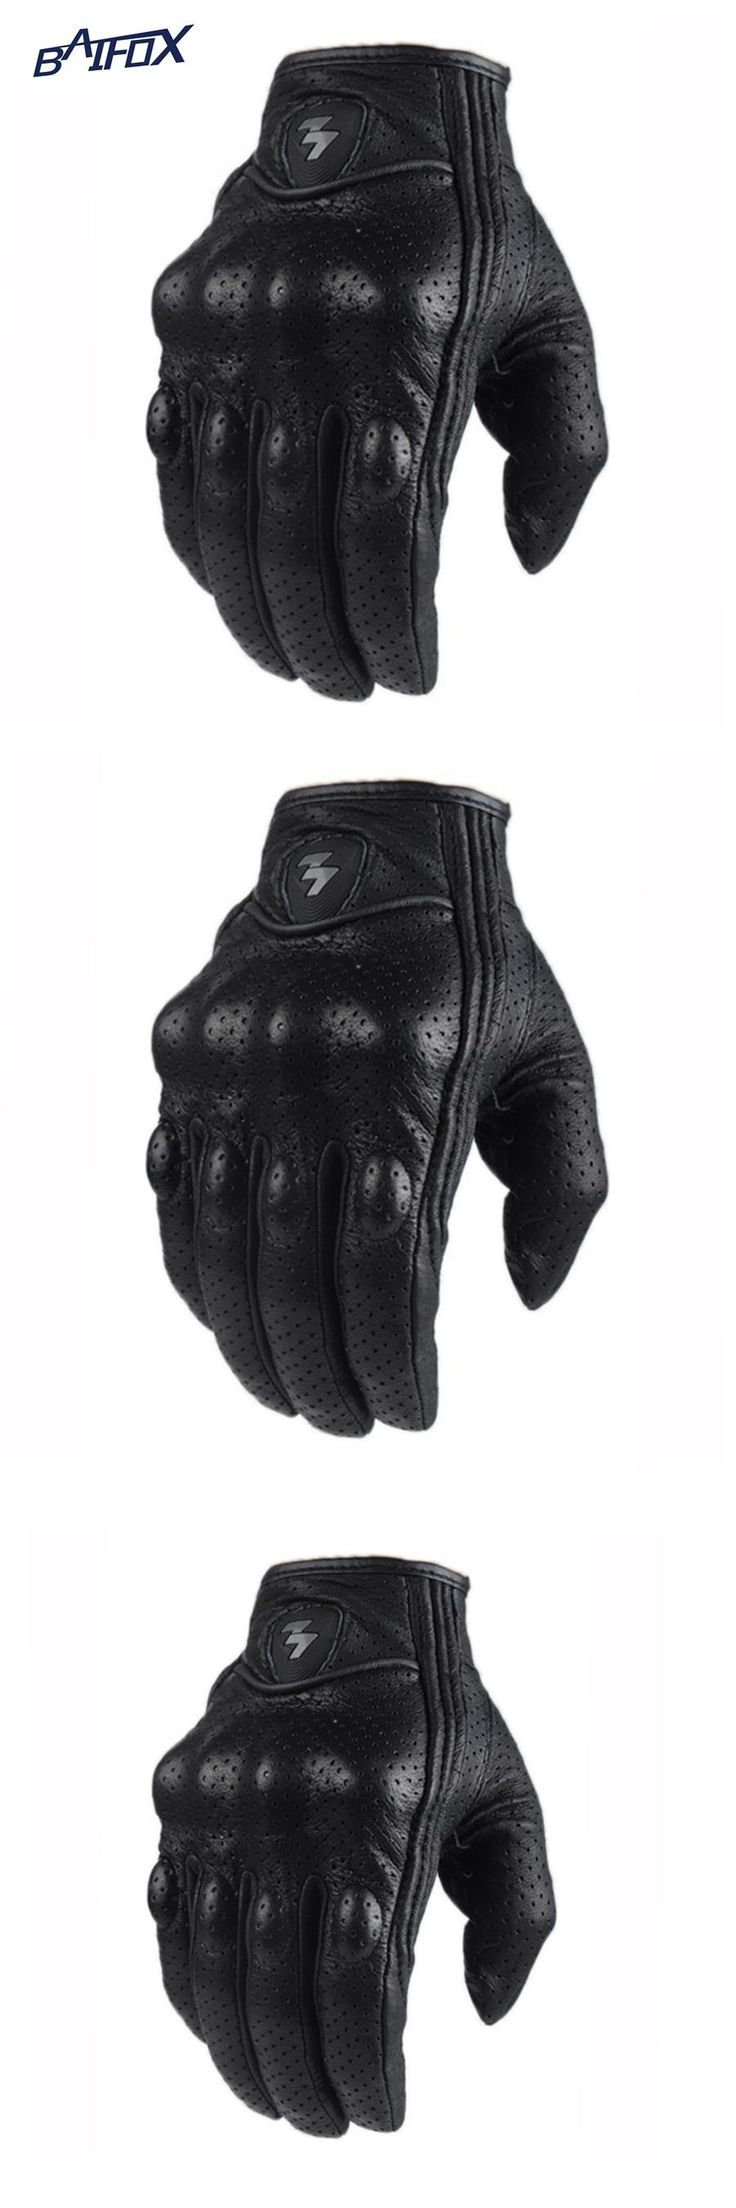 Motorcycle gloves with id pocket -  Visit To Buy Retro Perforated Leather Motorcycle Gloves Cycling Moto Motorbike Protective Gears Motocross